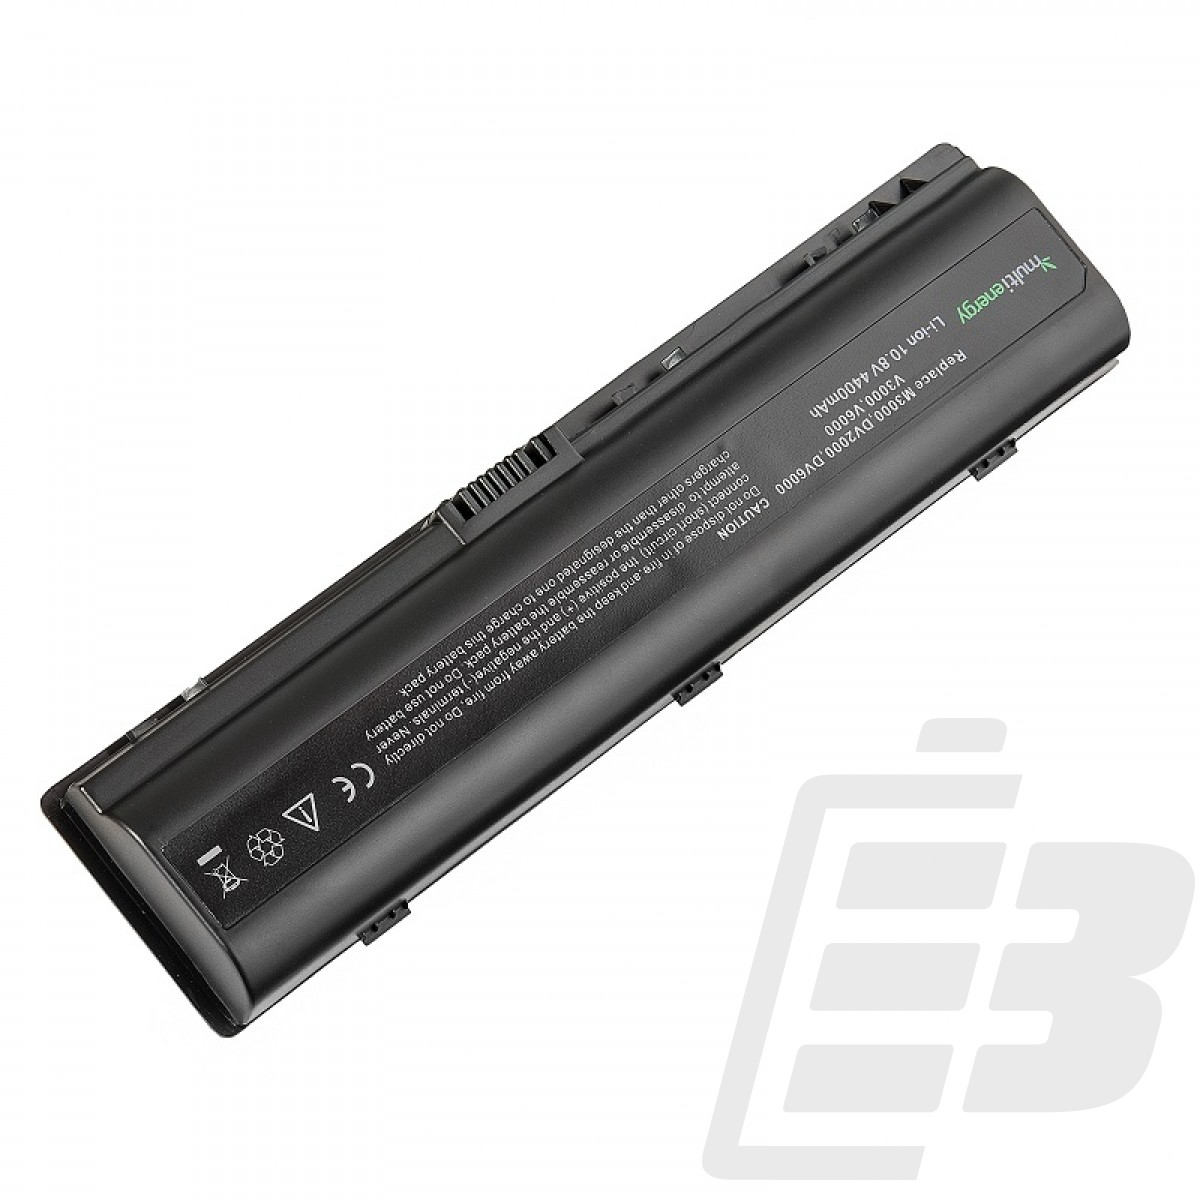 DRIVER FOR HP PAVILION DV6853EA